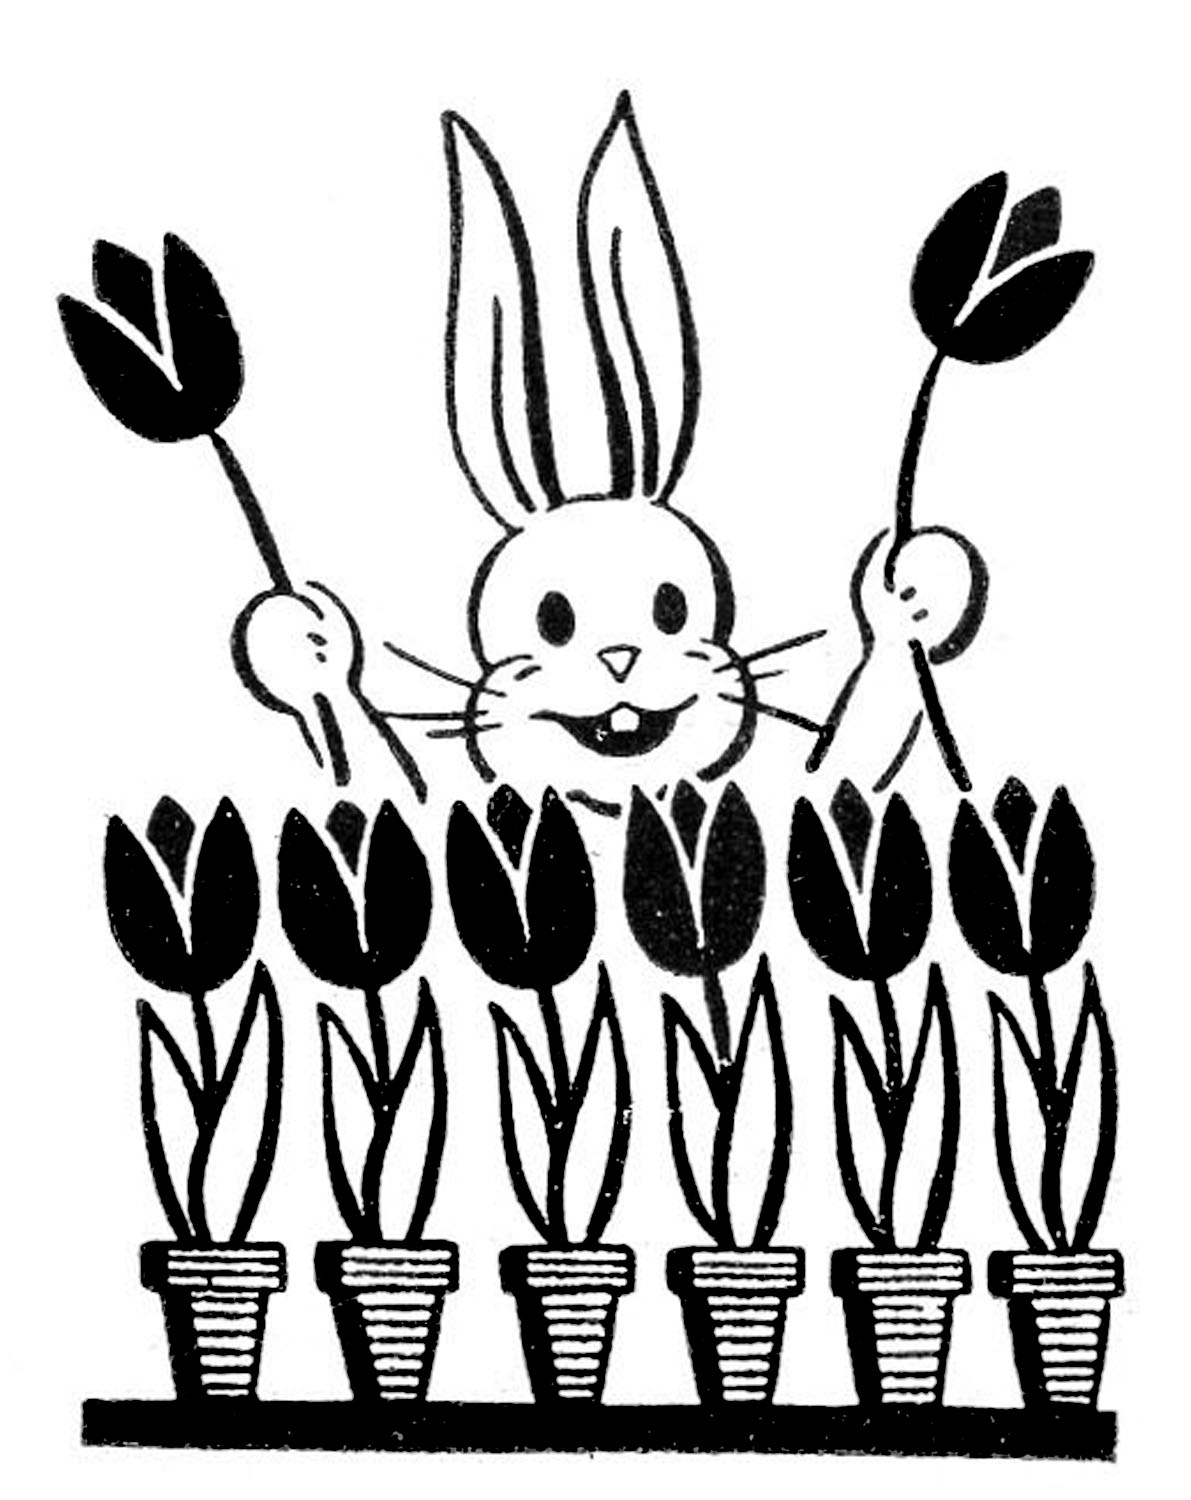 Retro Easter Bunny Images